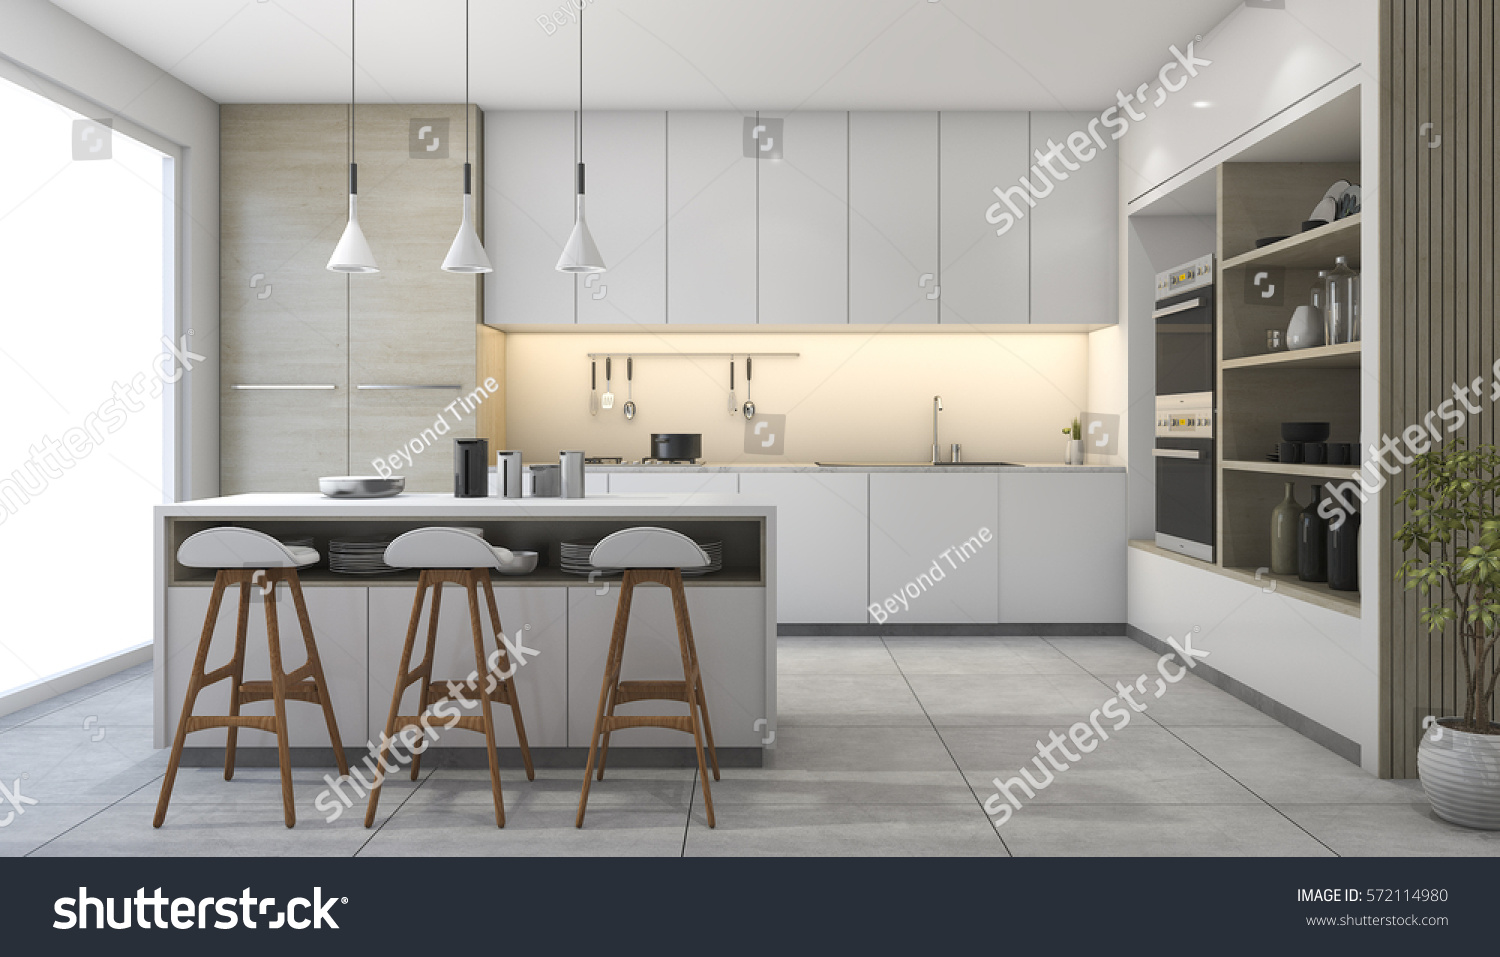 Traditional White Kitchen Design 3d Rendering: 3d Rendering White Modern Design Kitchen Stock